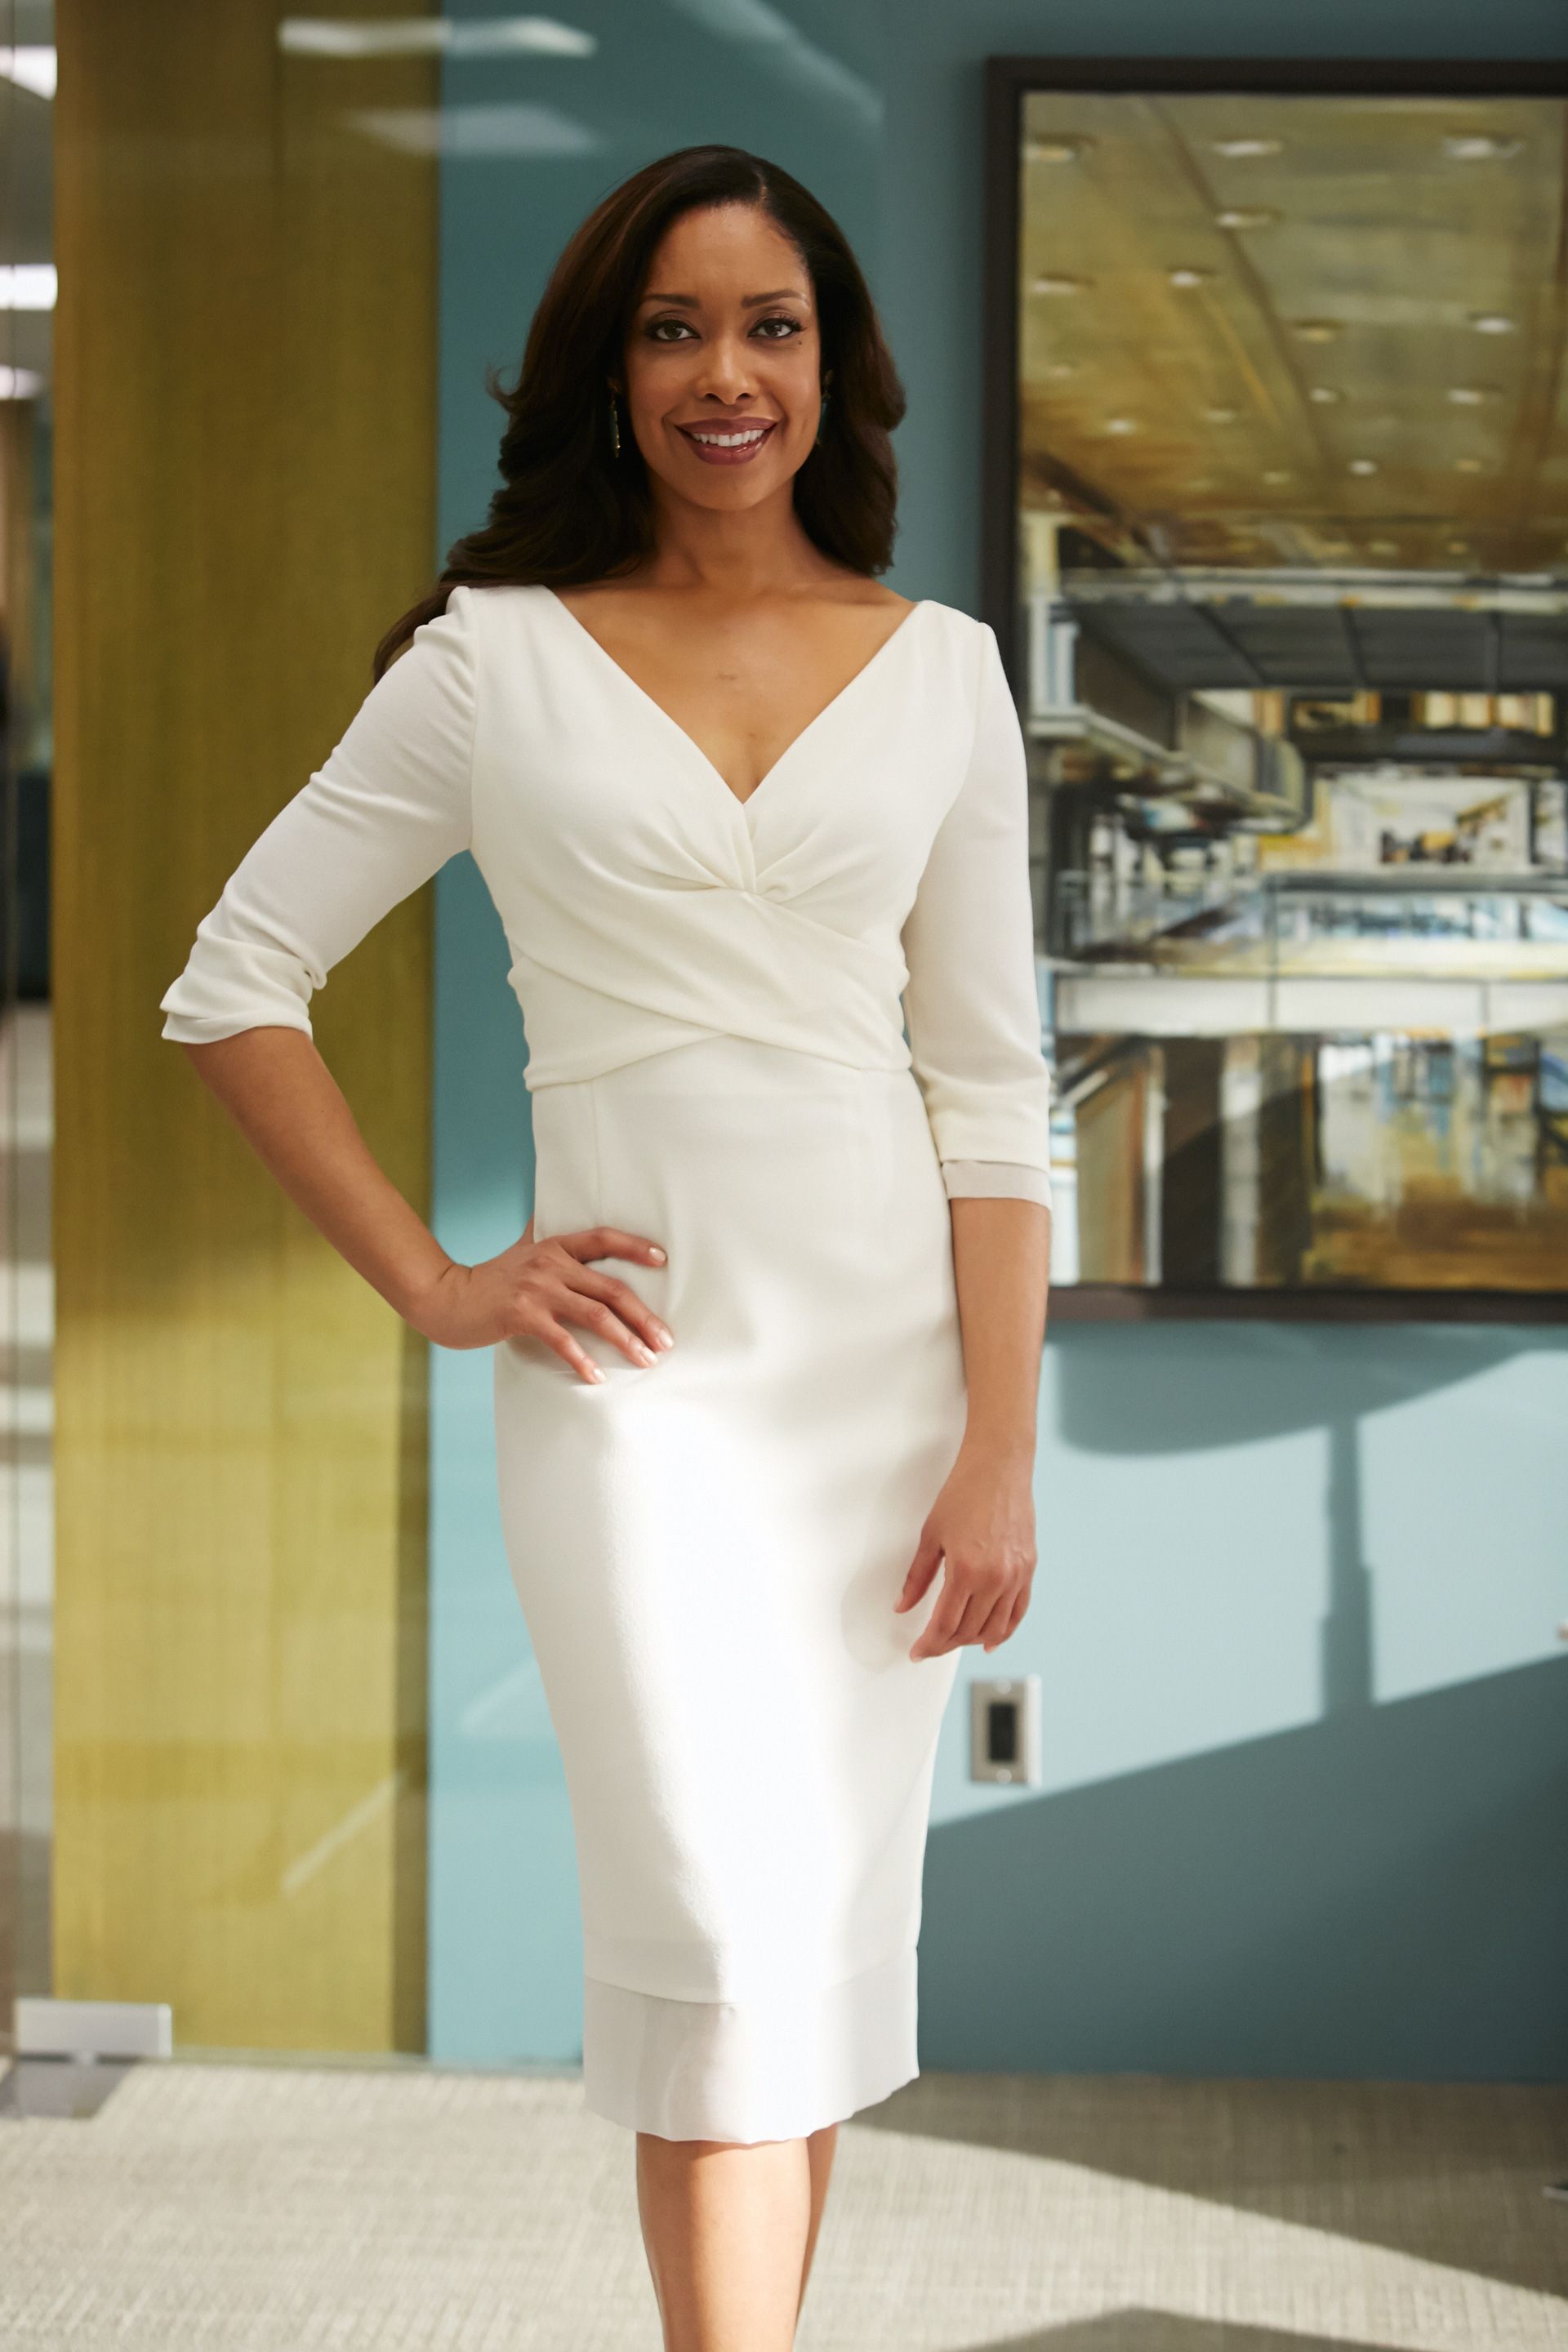 Exclusive fashion photos from Suits: White dress